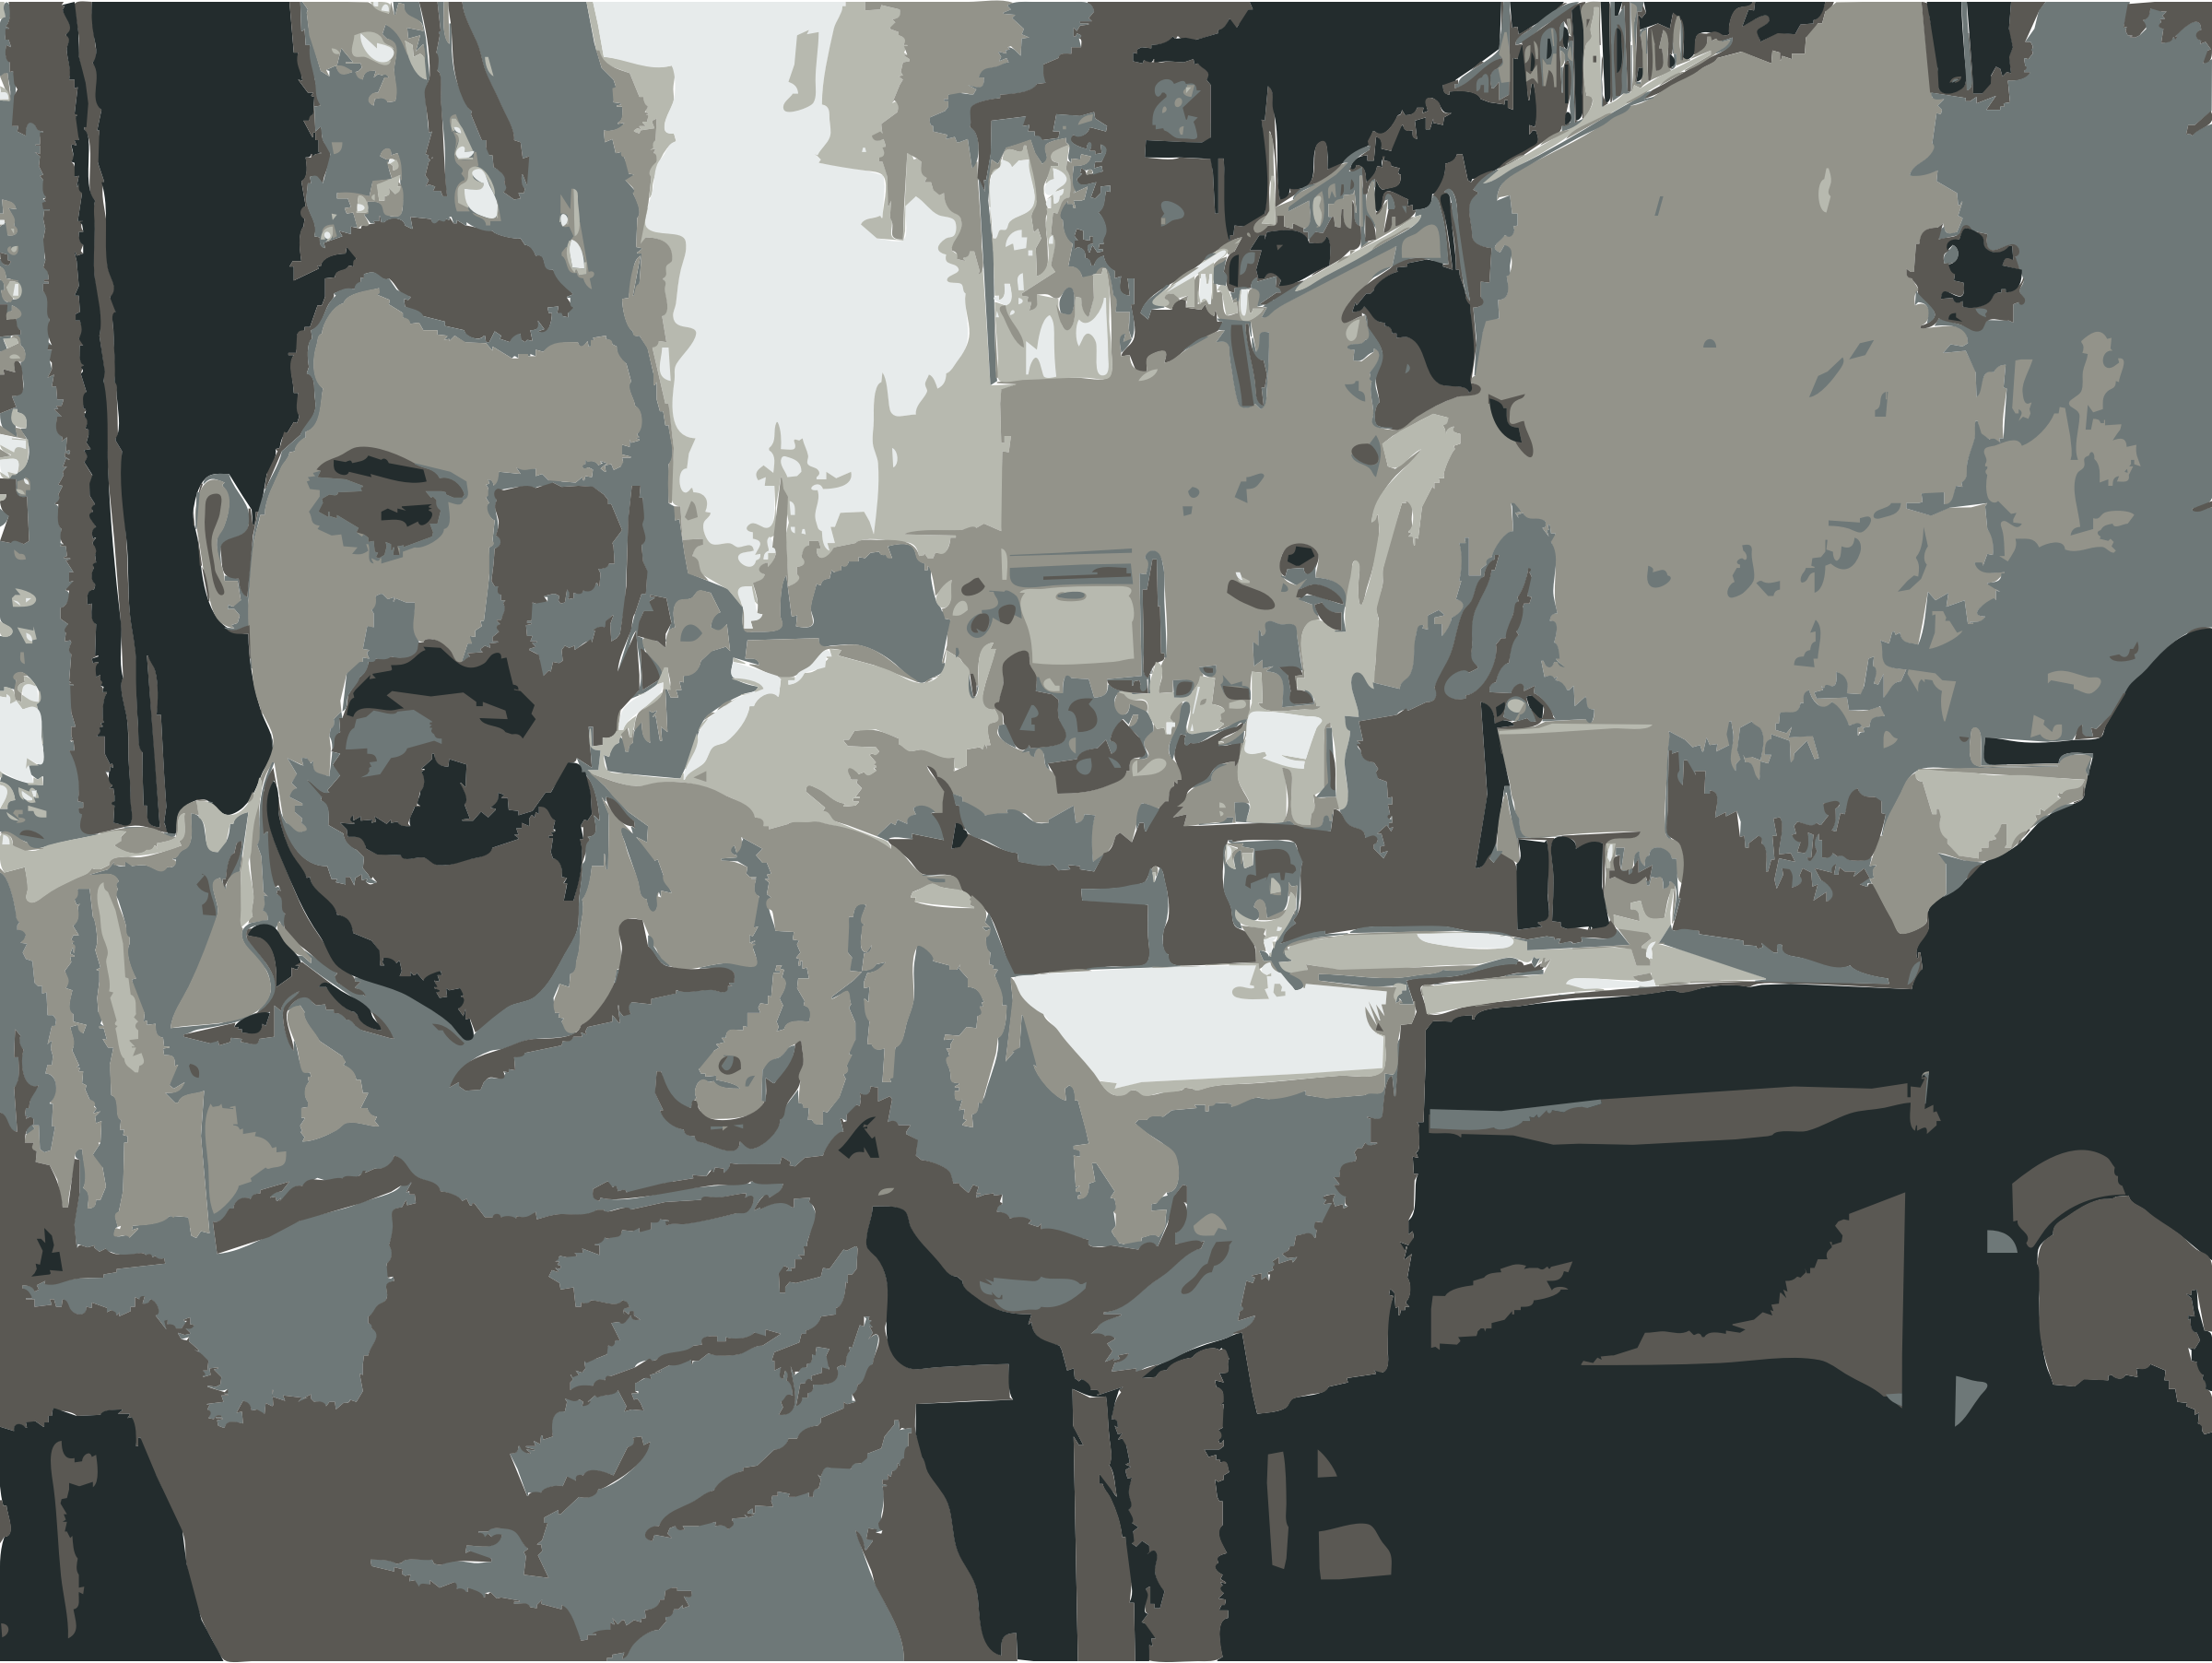 Bassel in Damascus by rejon